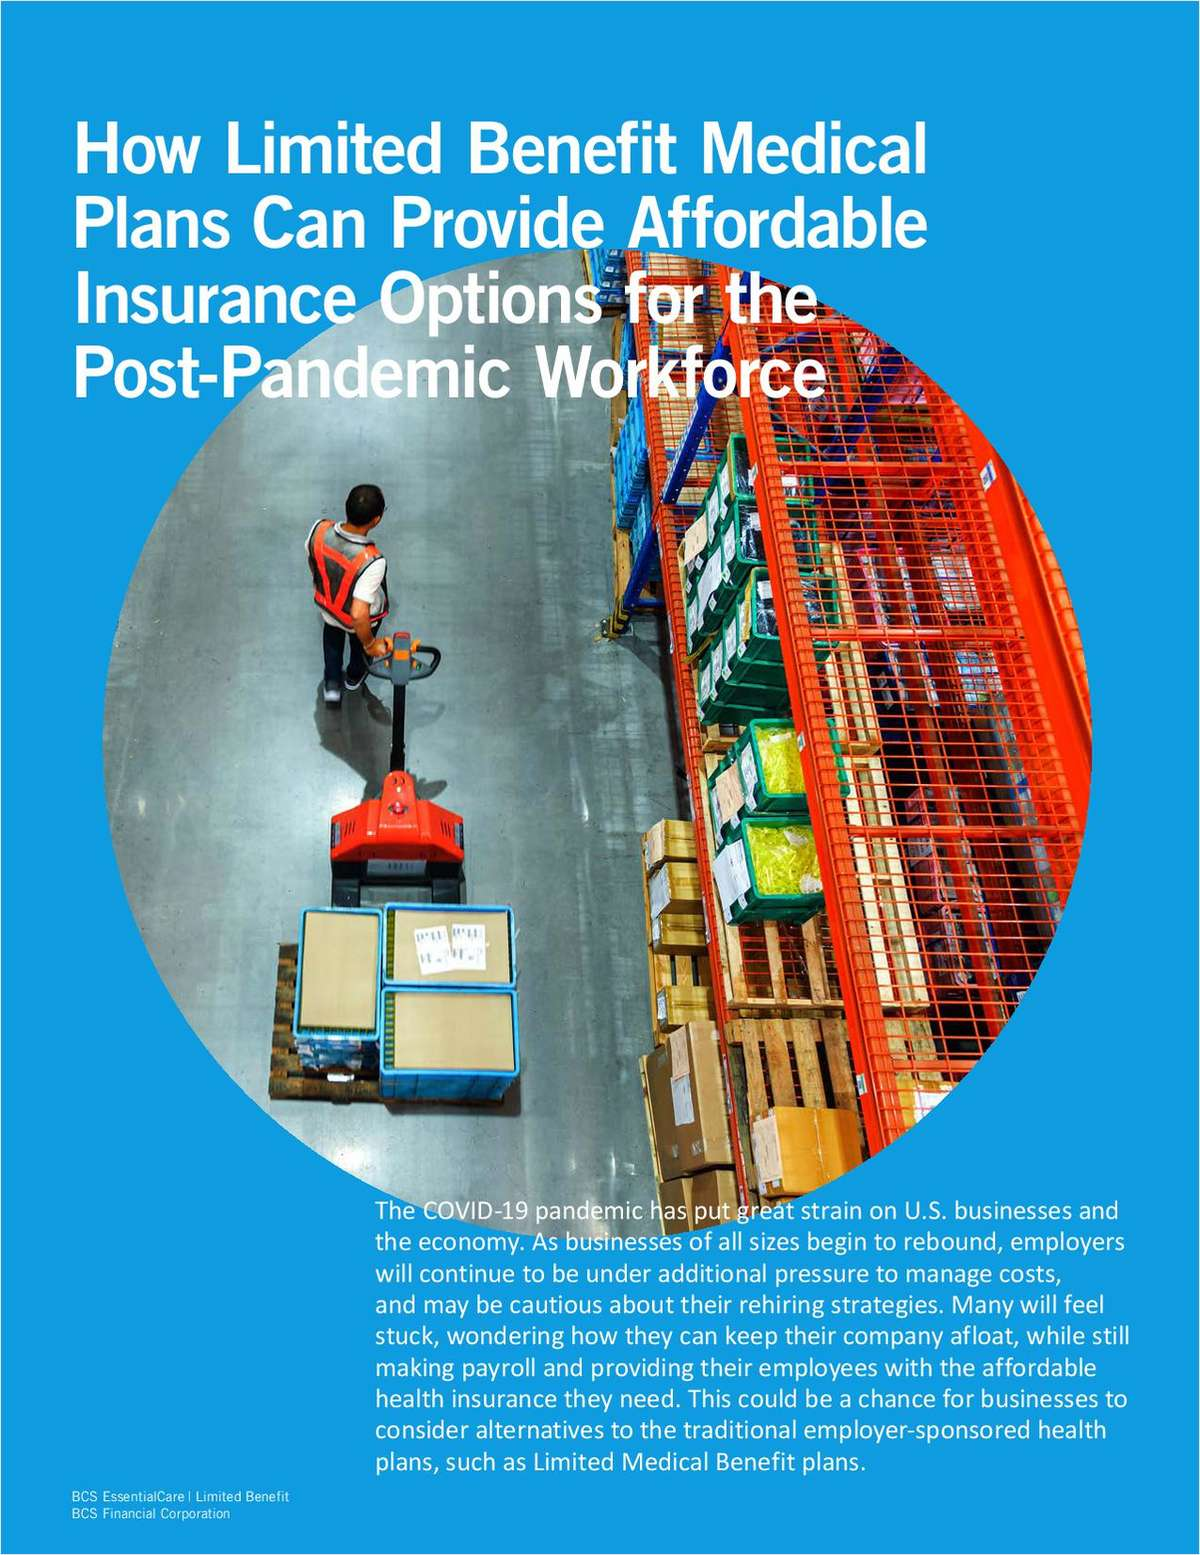 Help Clients Manage Benefits Costs Now and Post-Pandemic